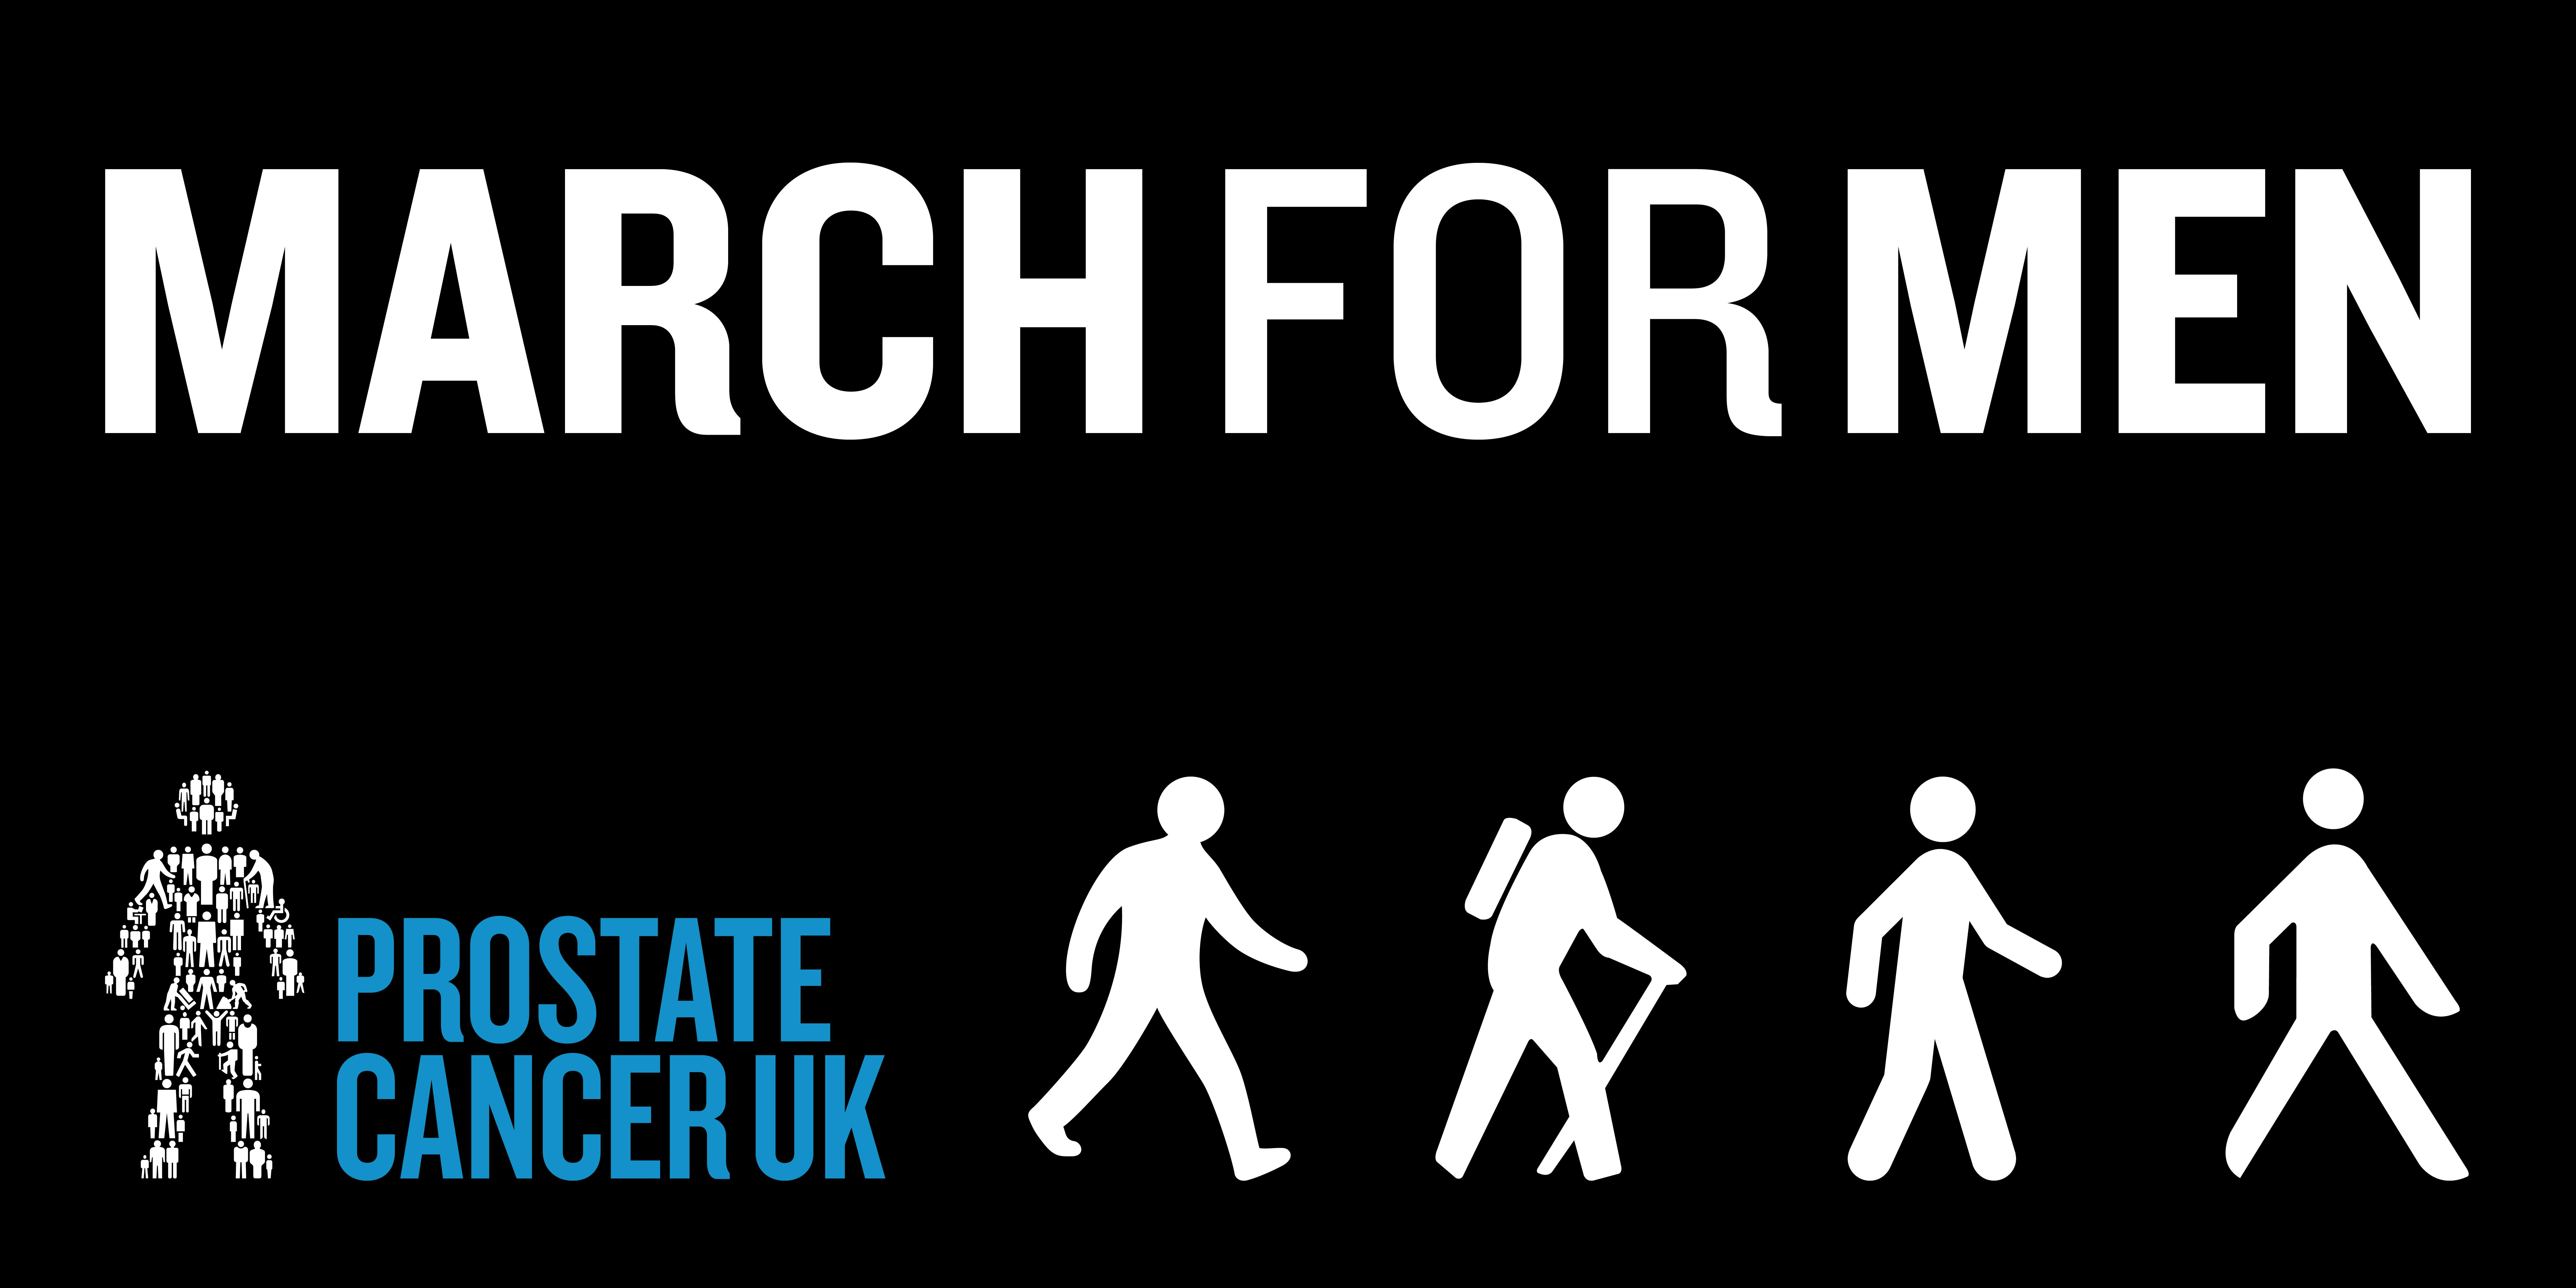 The London March for Men 2017